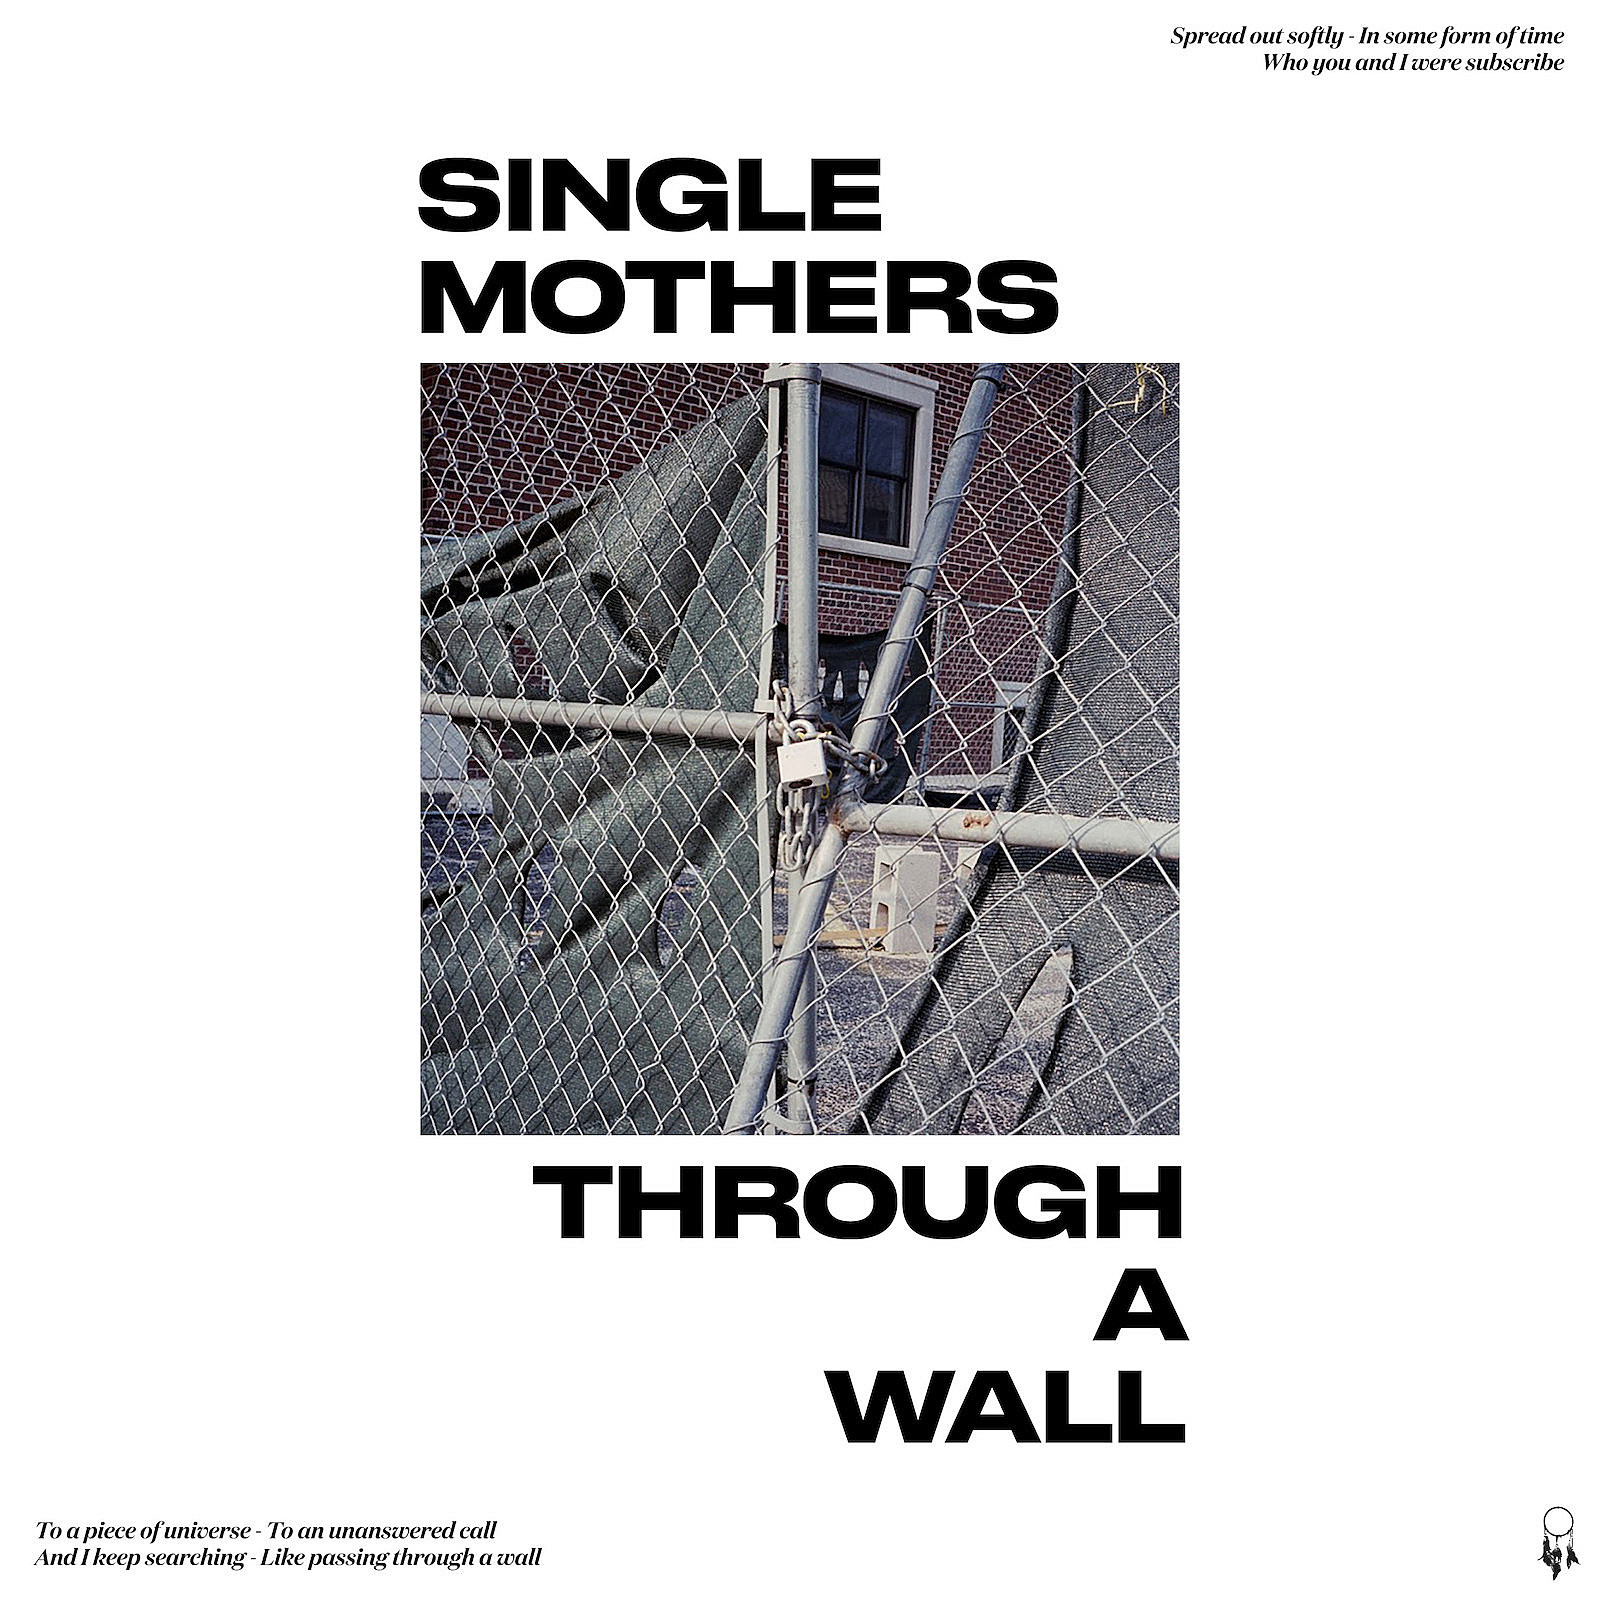 Single Mothers Through A Wall